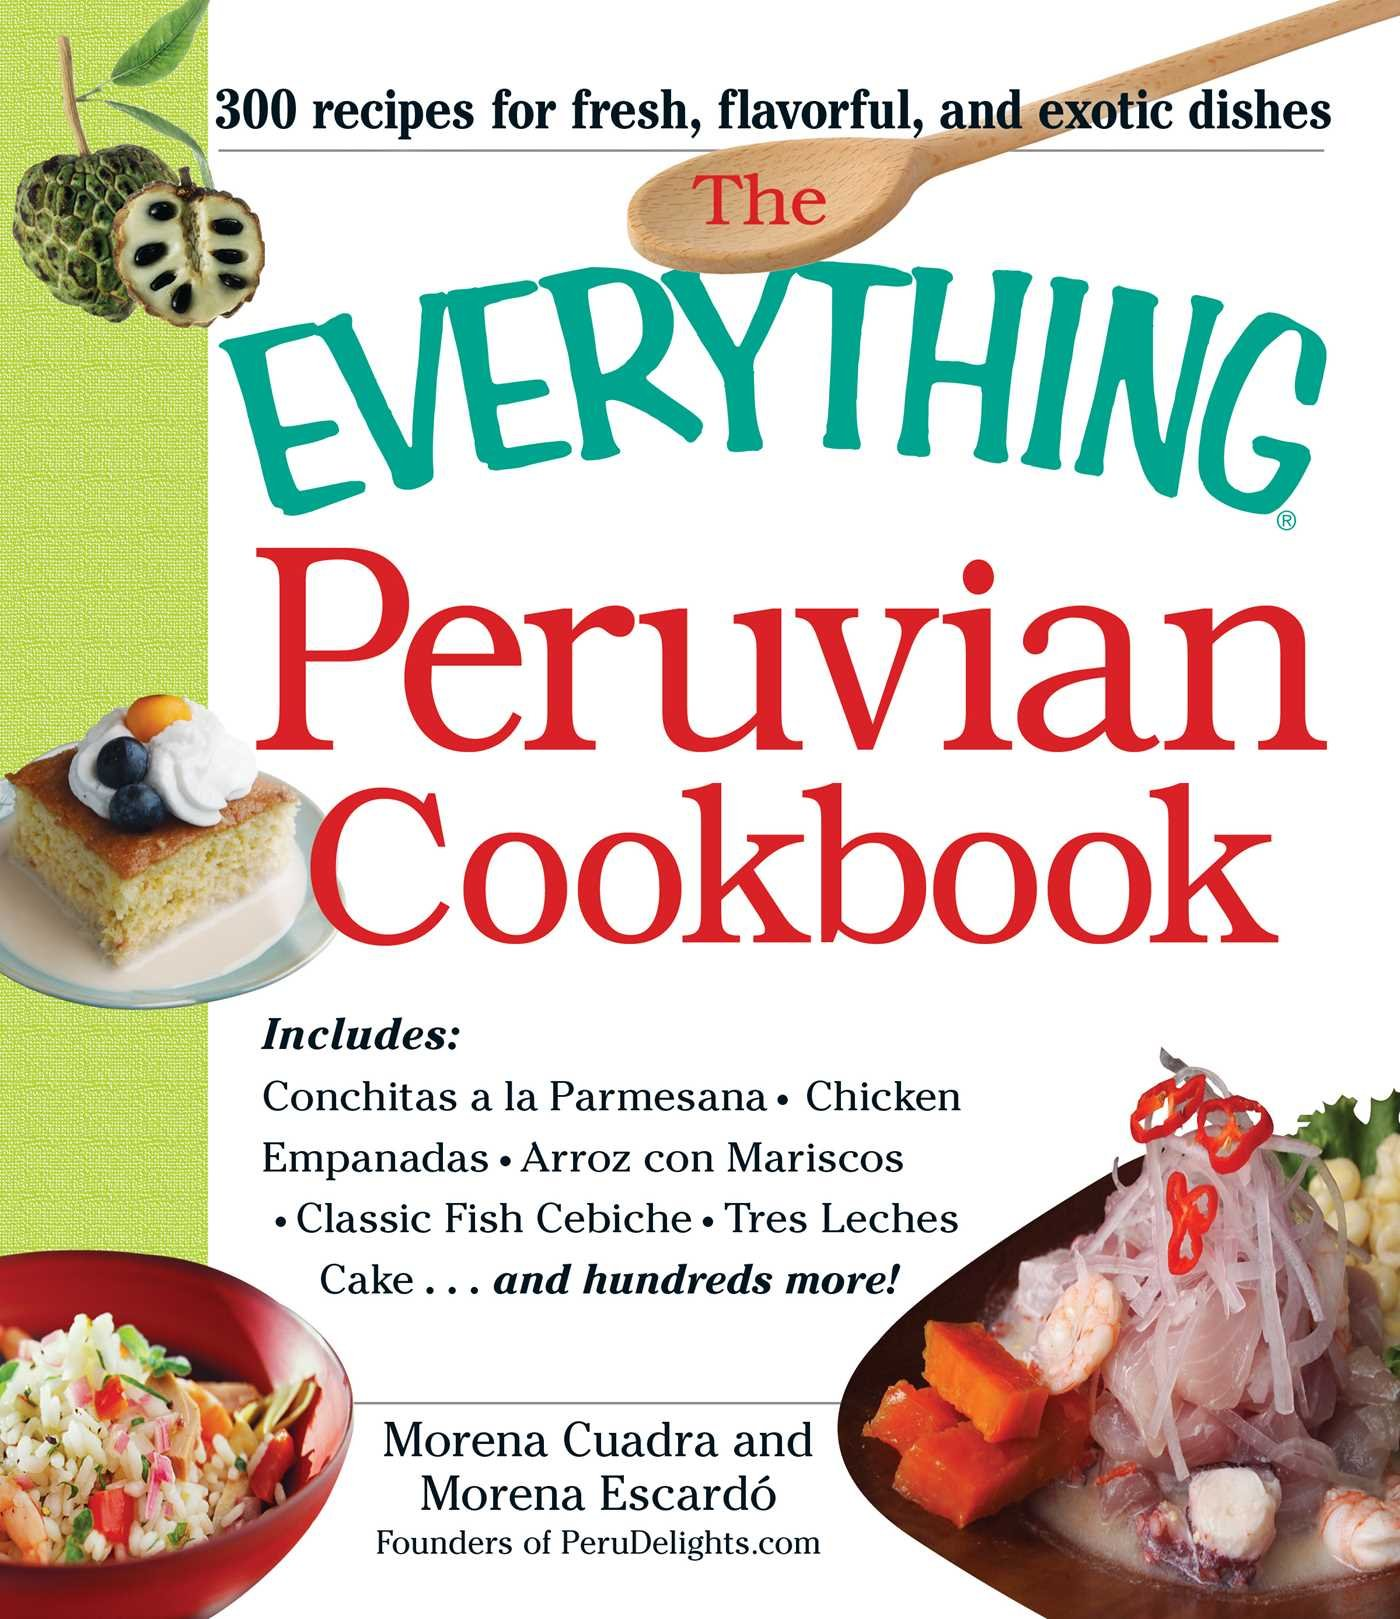 The Everything Peruvian Cookbook: Includes Conchitas a la Parmesana, Chicken Empanadas, Arroz con